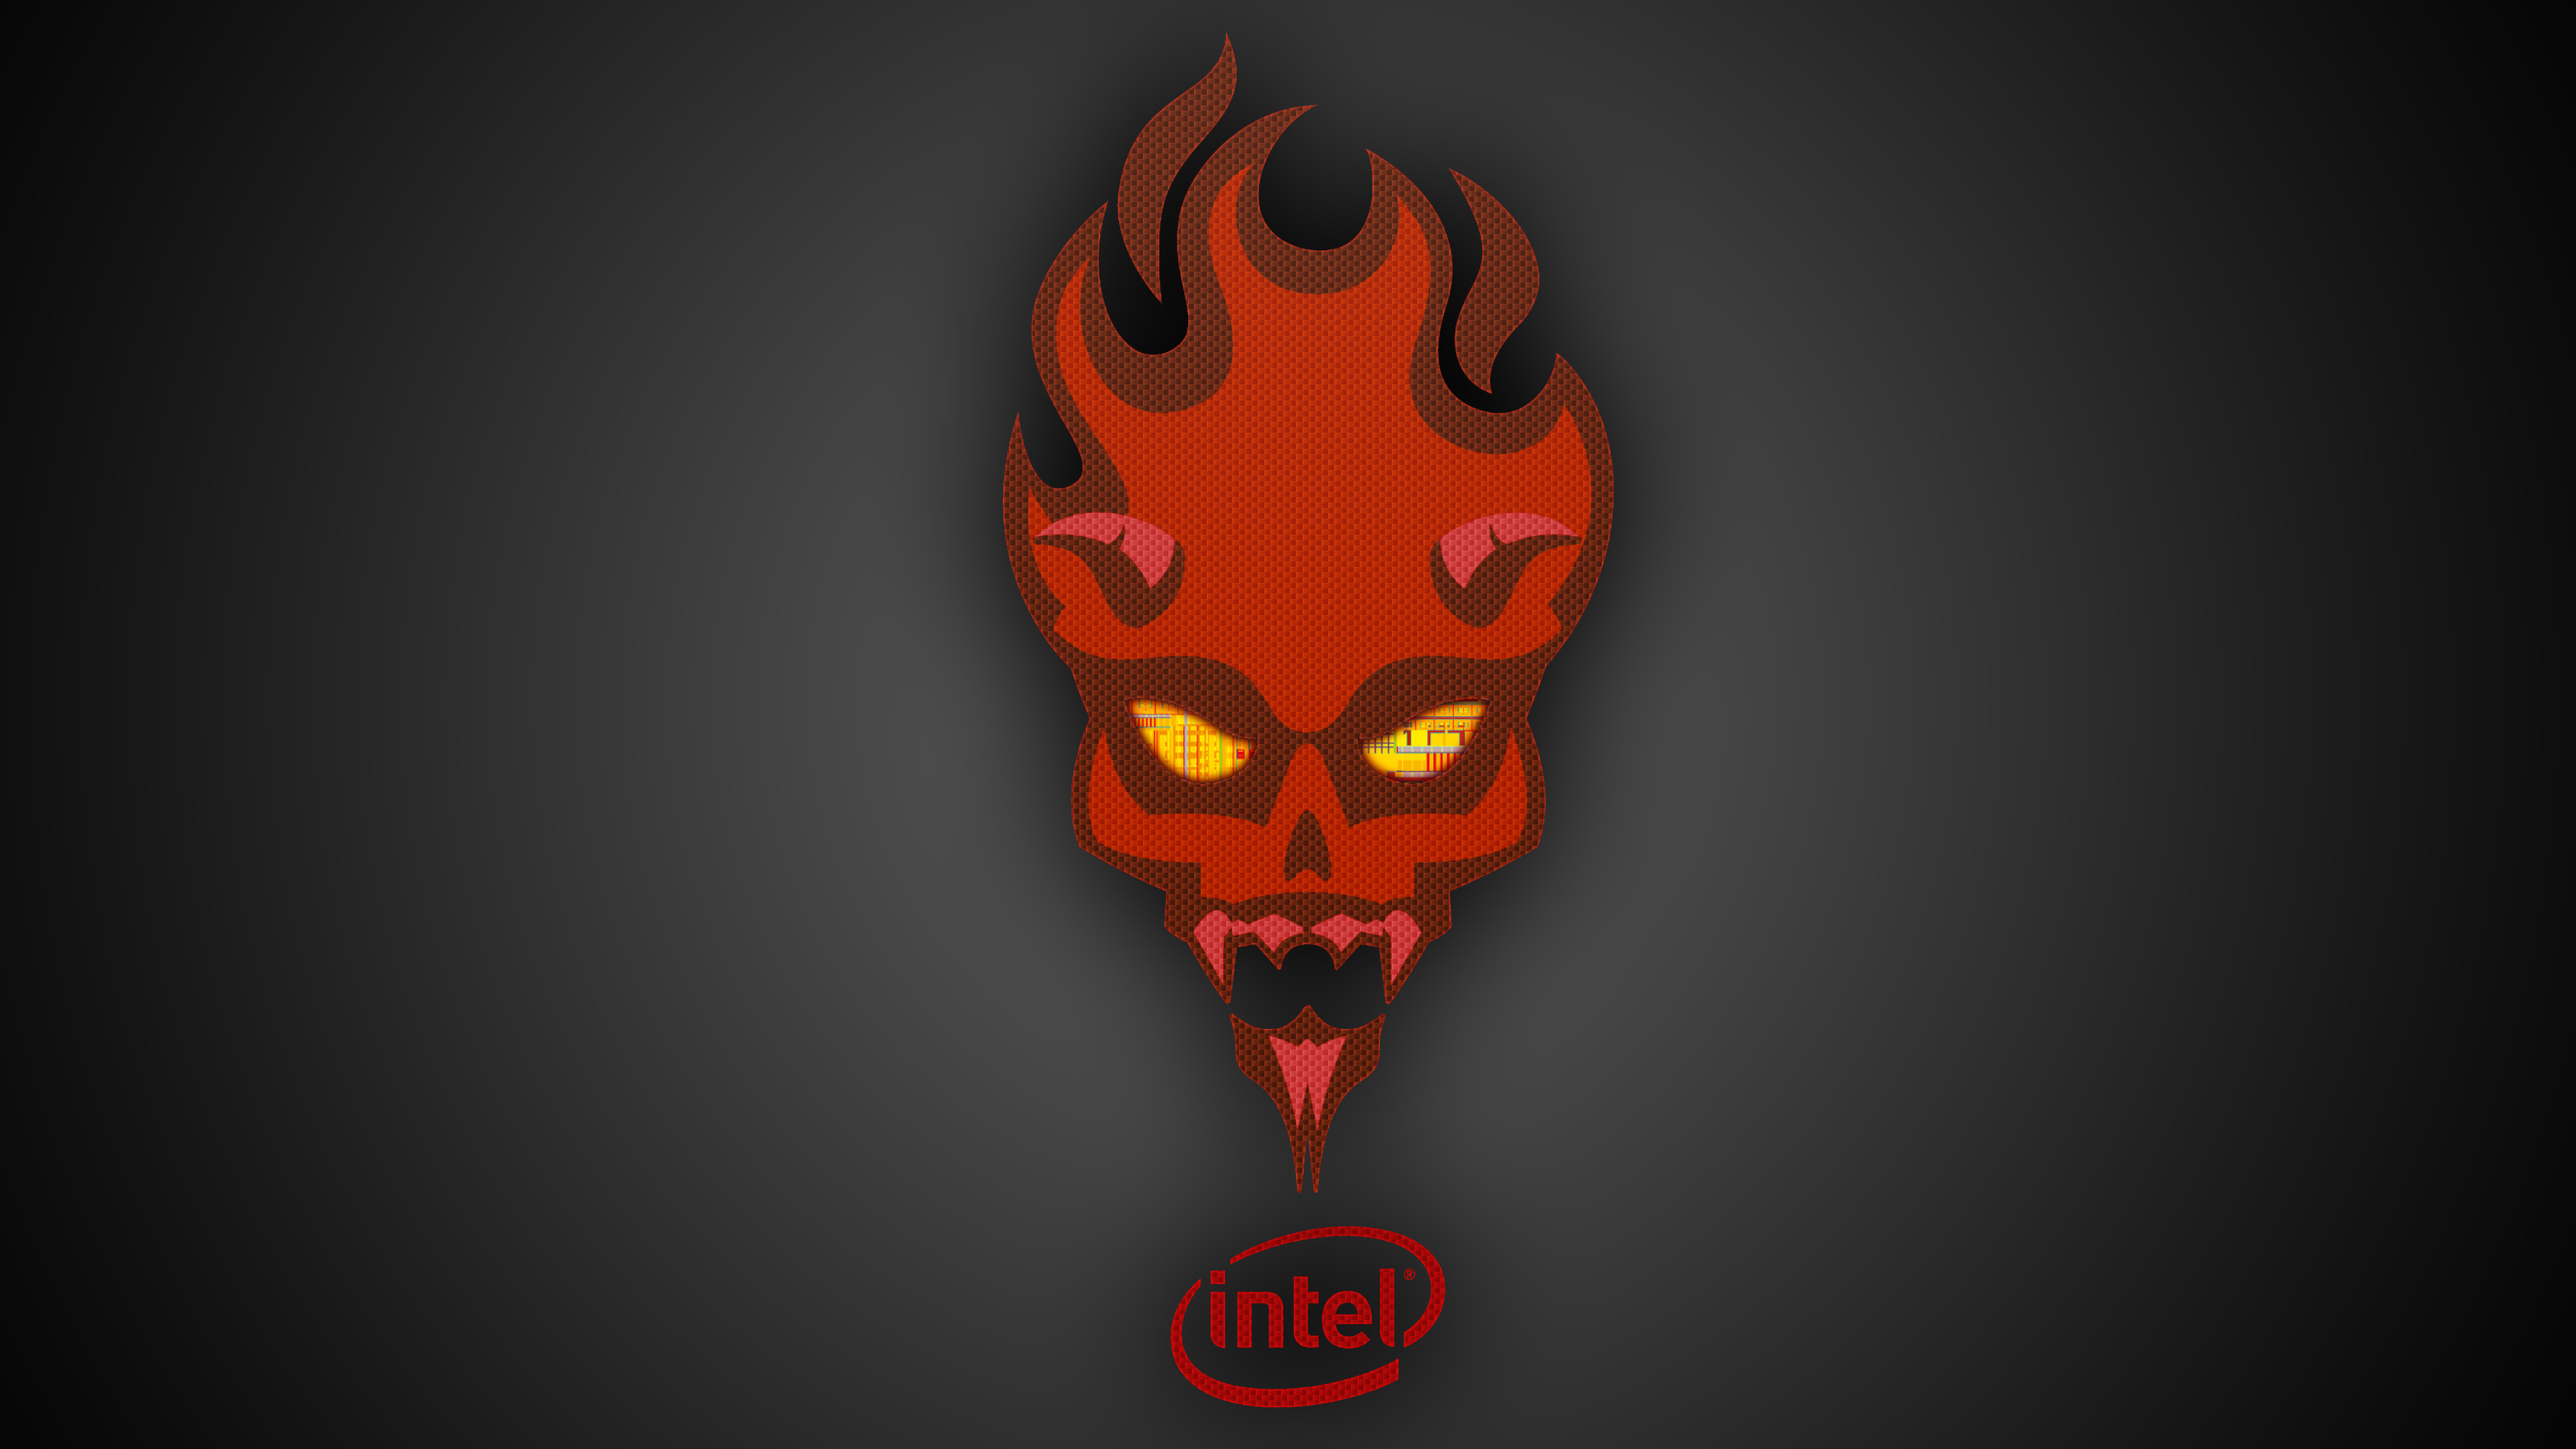 Res: 3840x2160, Intel Red - Wallpaper #121